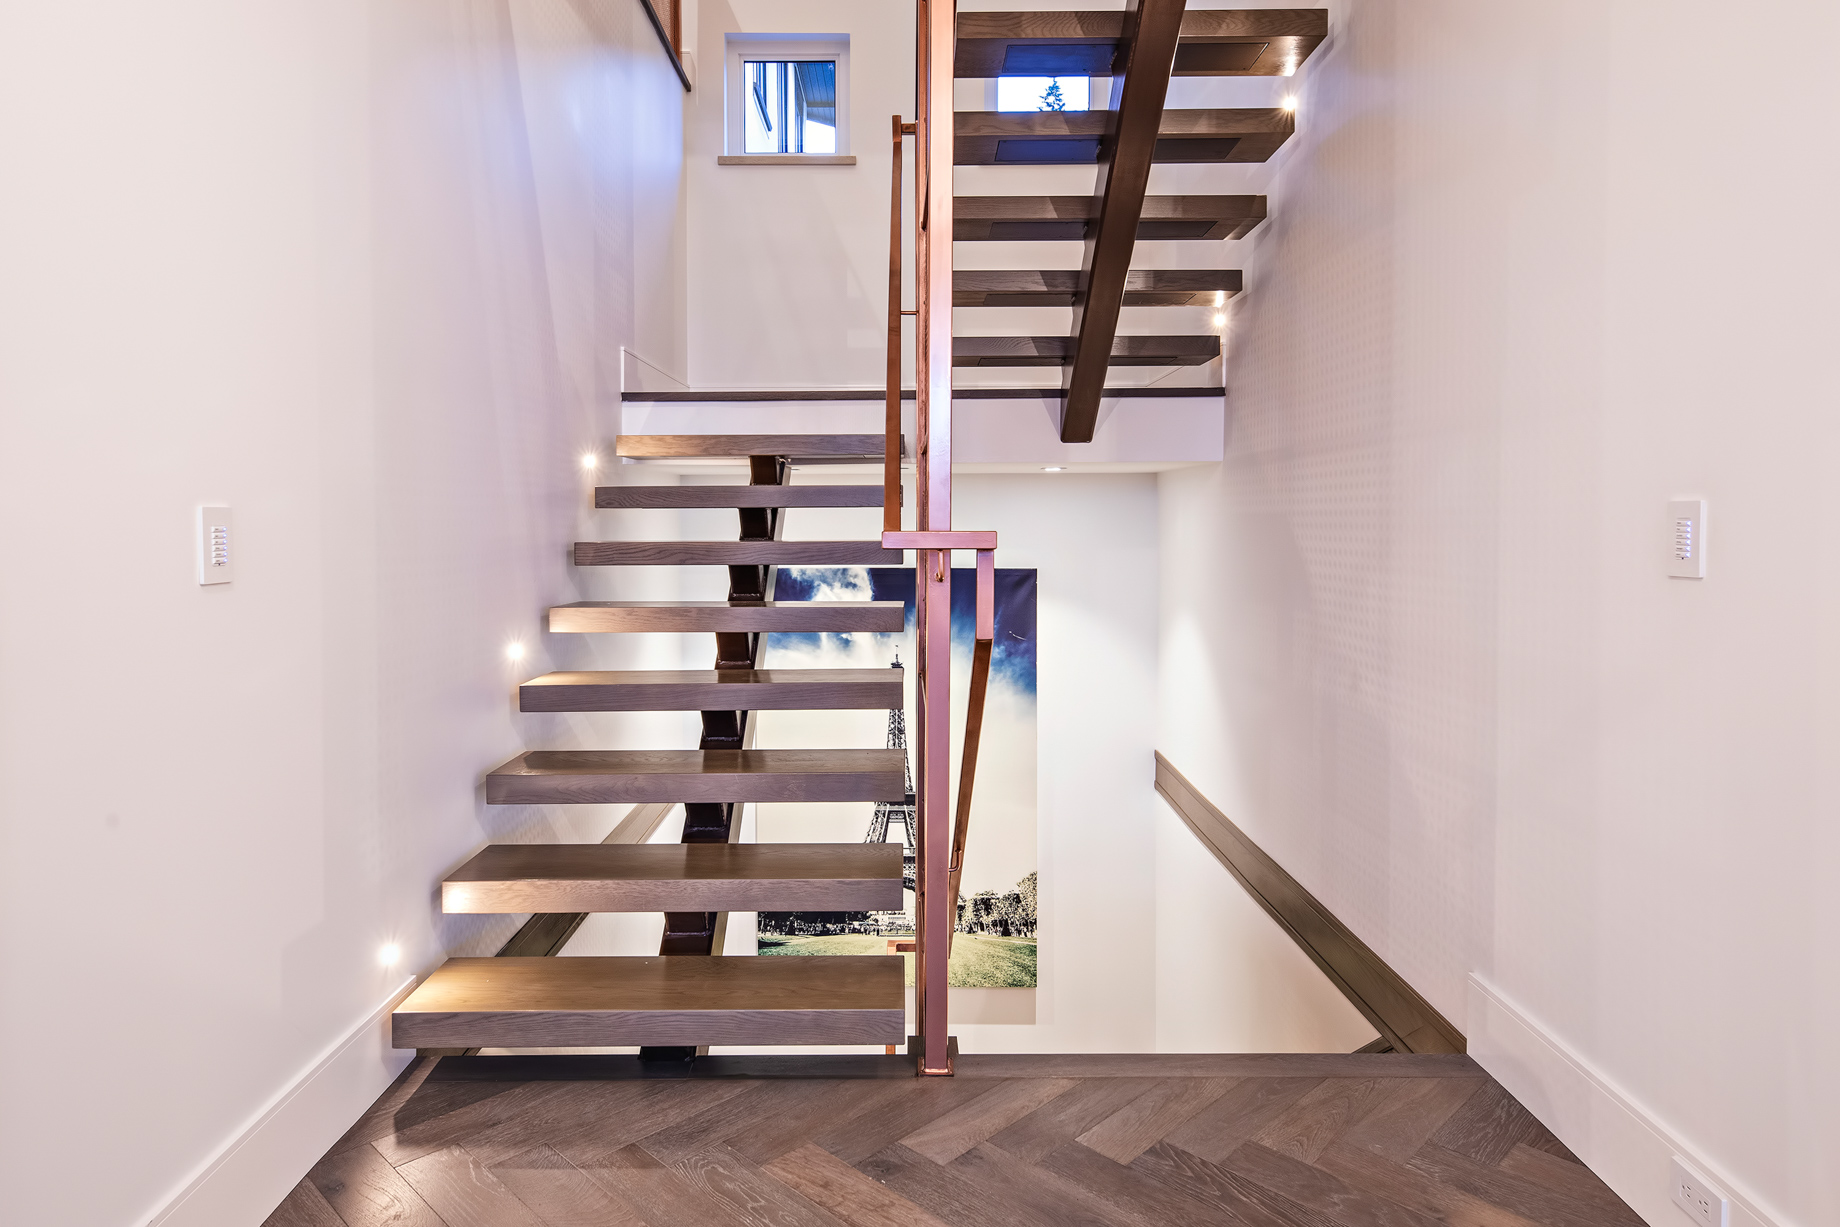 2111 Union Court, West Vancouver, BC, Canada - Stairway